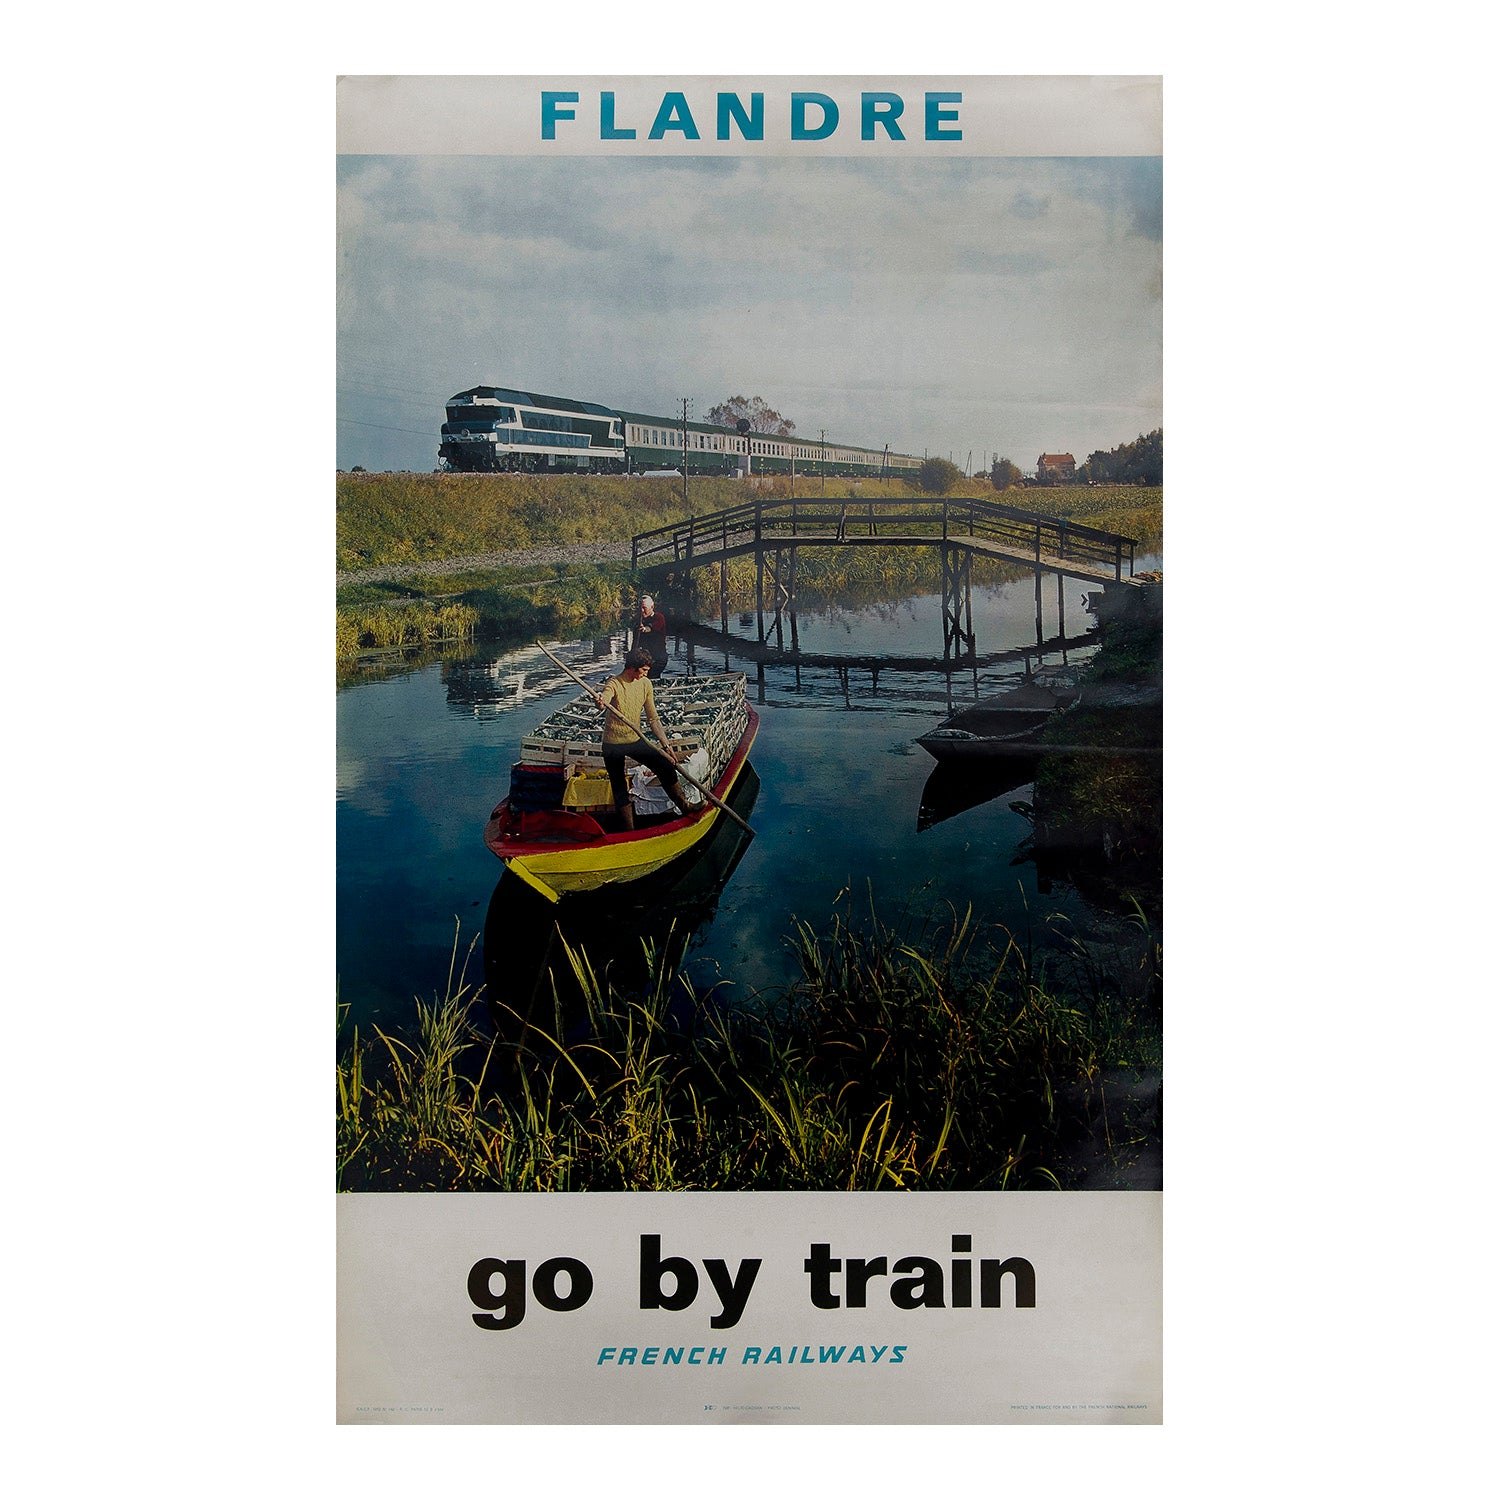 Flandre. Go by train. French Railways